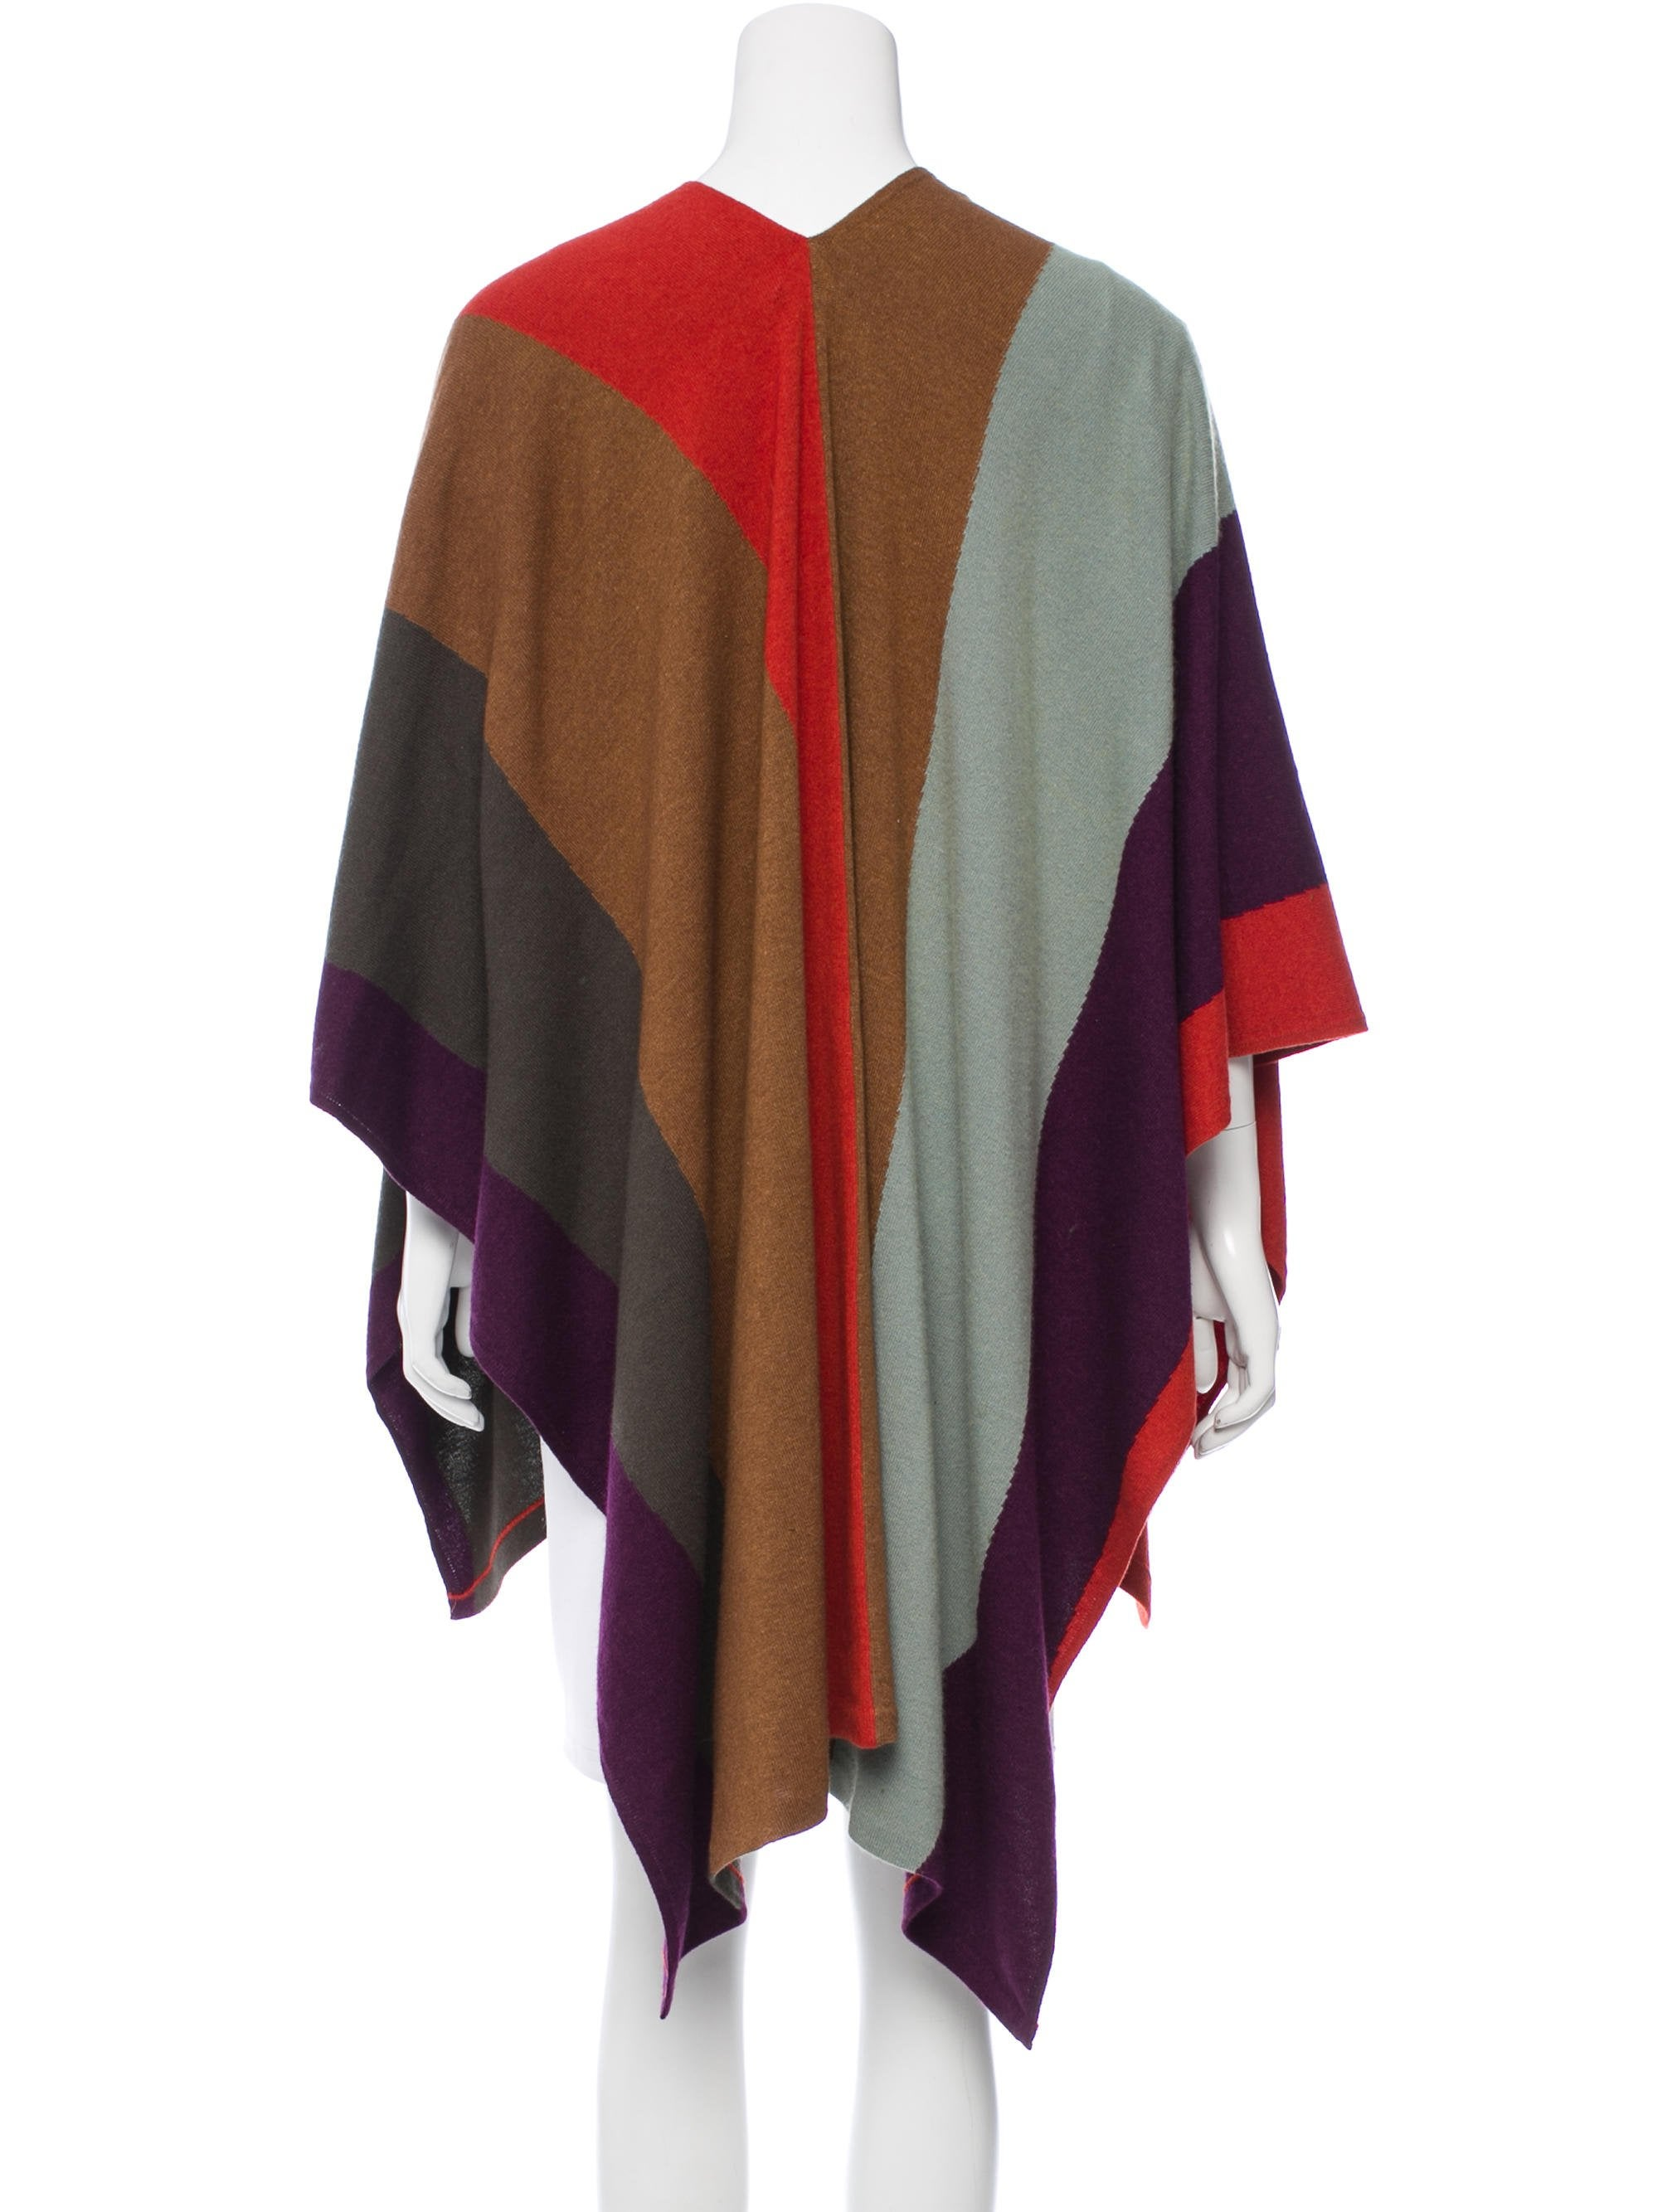 Book Cover Pattern Wool Cashmere Poncho : Etro patterned wool blend poncho clothing etr